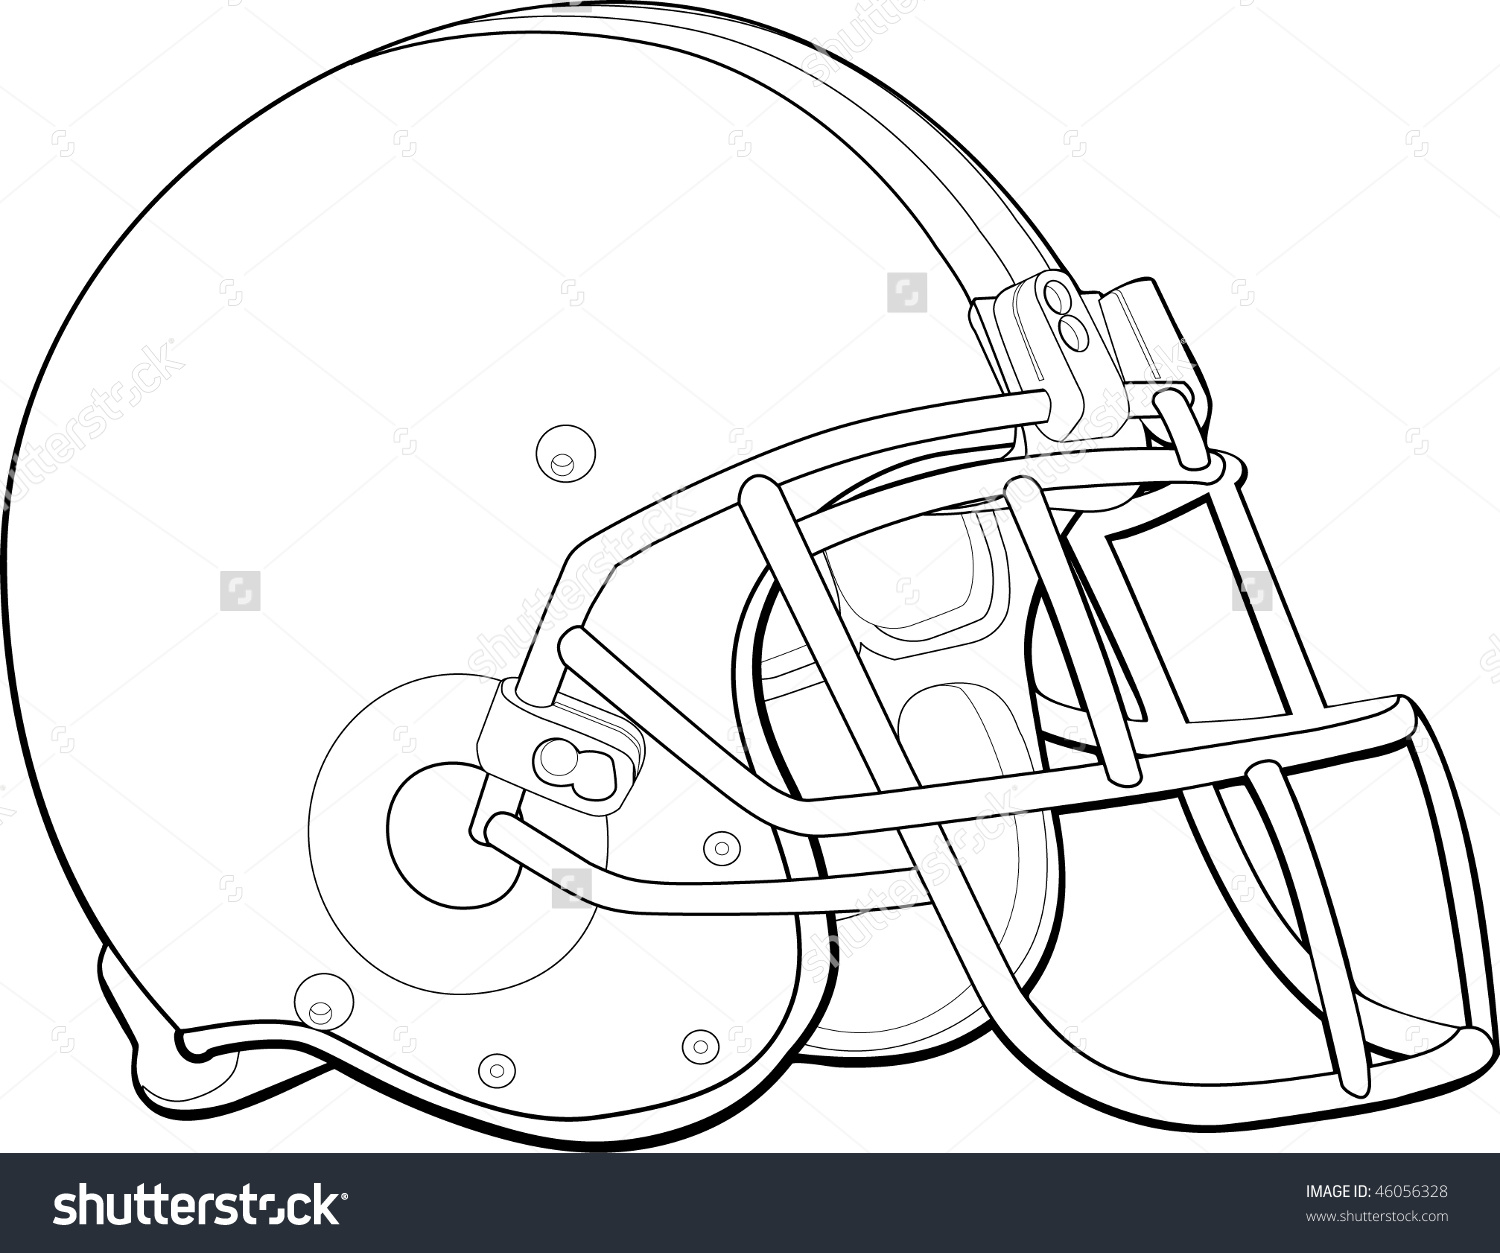 Helmet Football Team Outline Stock Vector 46056328.